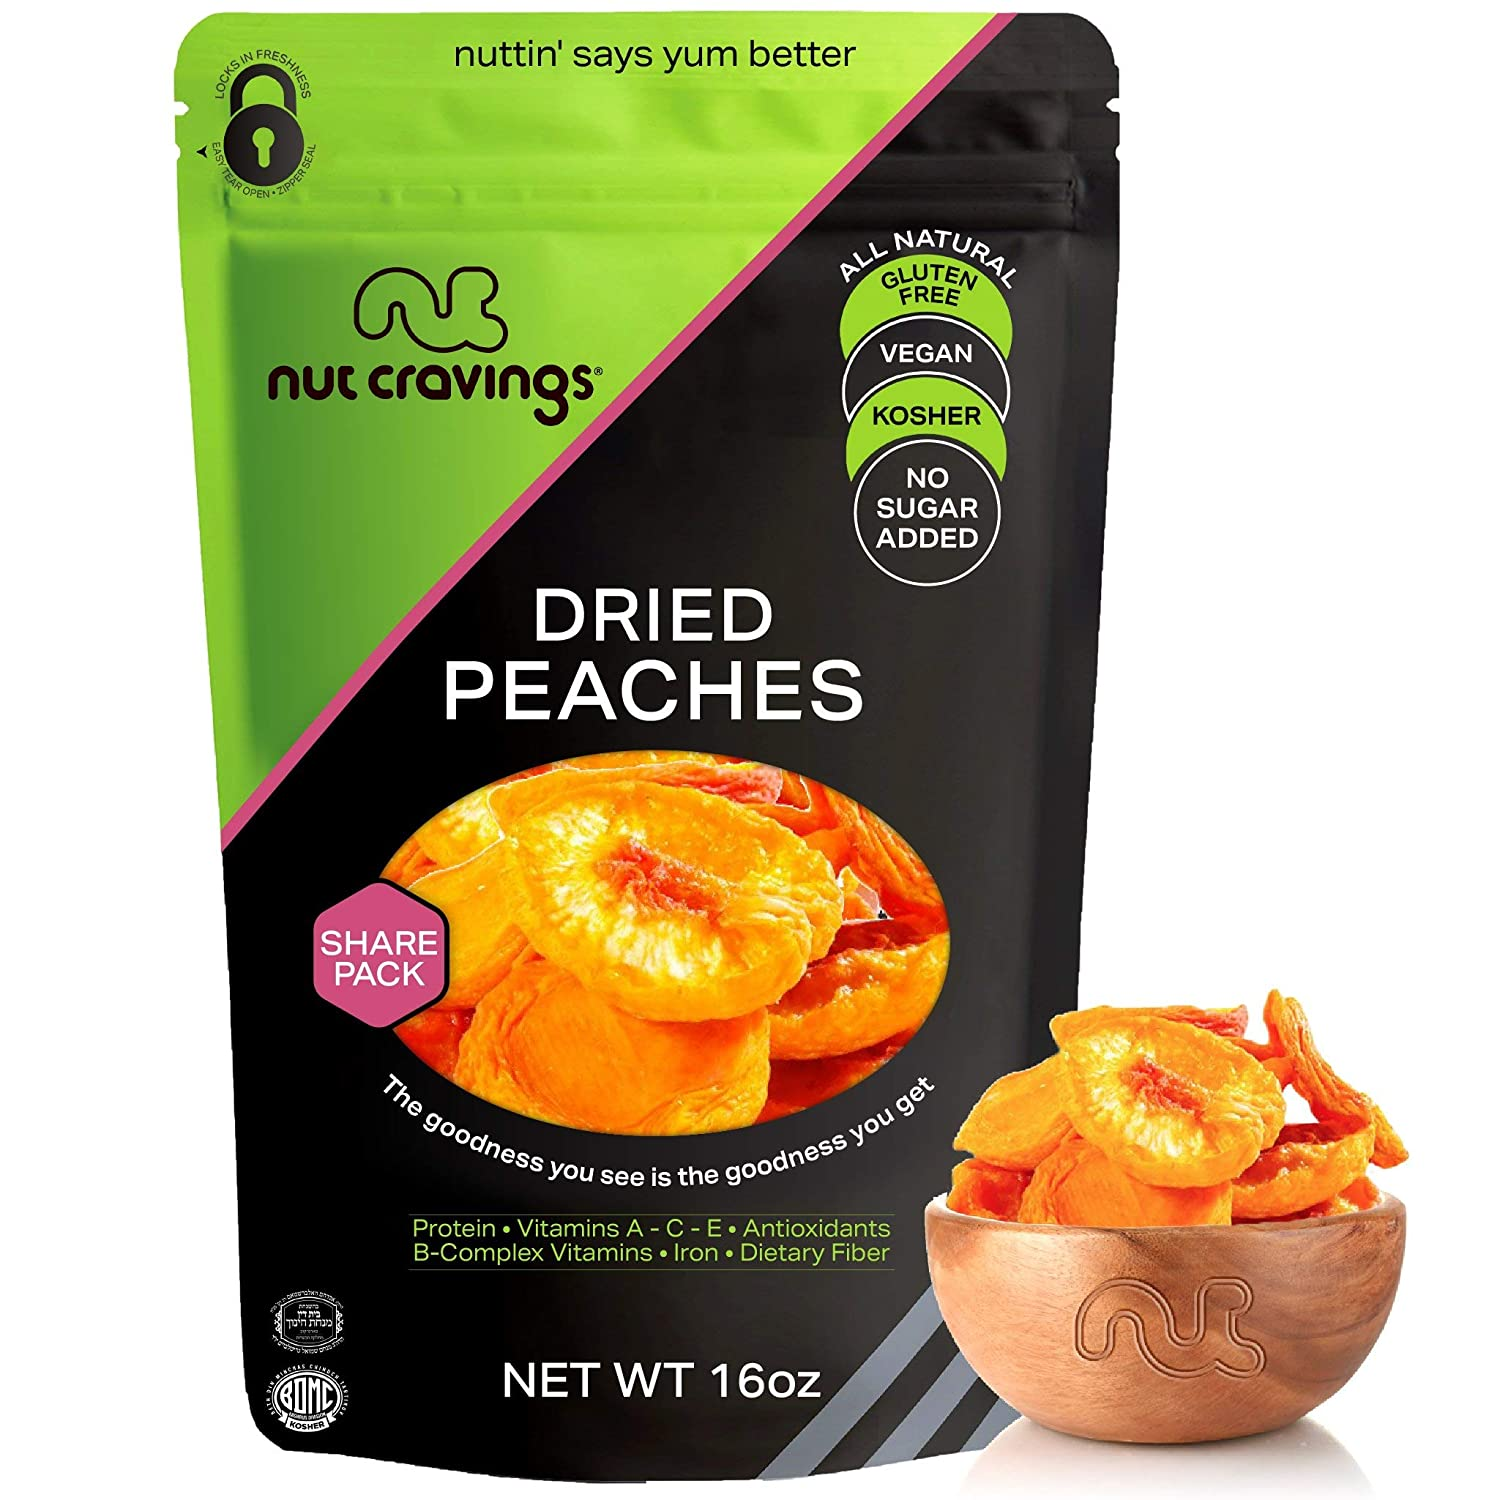 Sun Dried California Peaches, (16oz - 1 Pound) Packed Fresh in Resealable Bag - Sweet Dehydrated Fruit Treat, Trail Mix Snack - Healthy Food, All Natural, Vegan, Gluten Free, Kosher